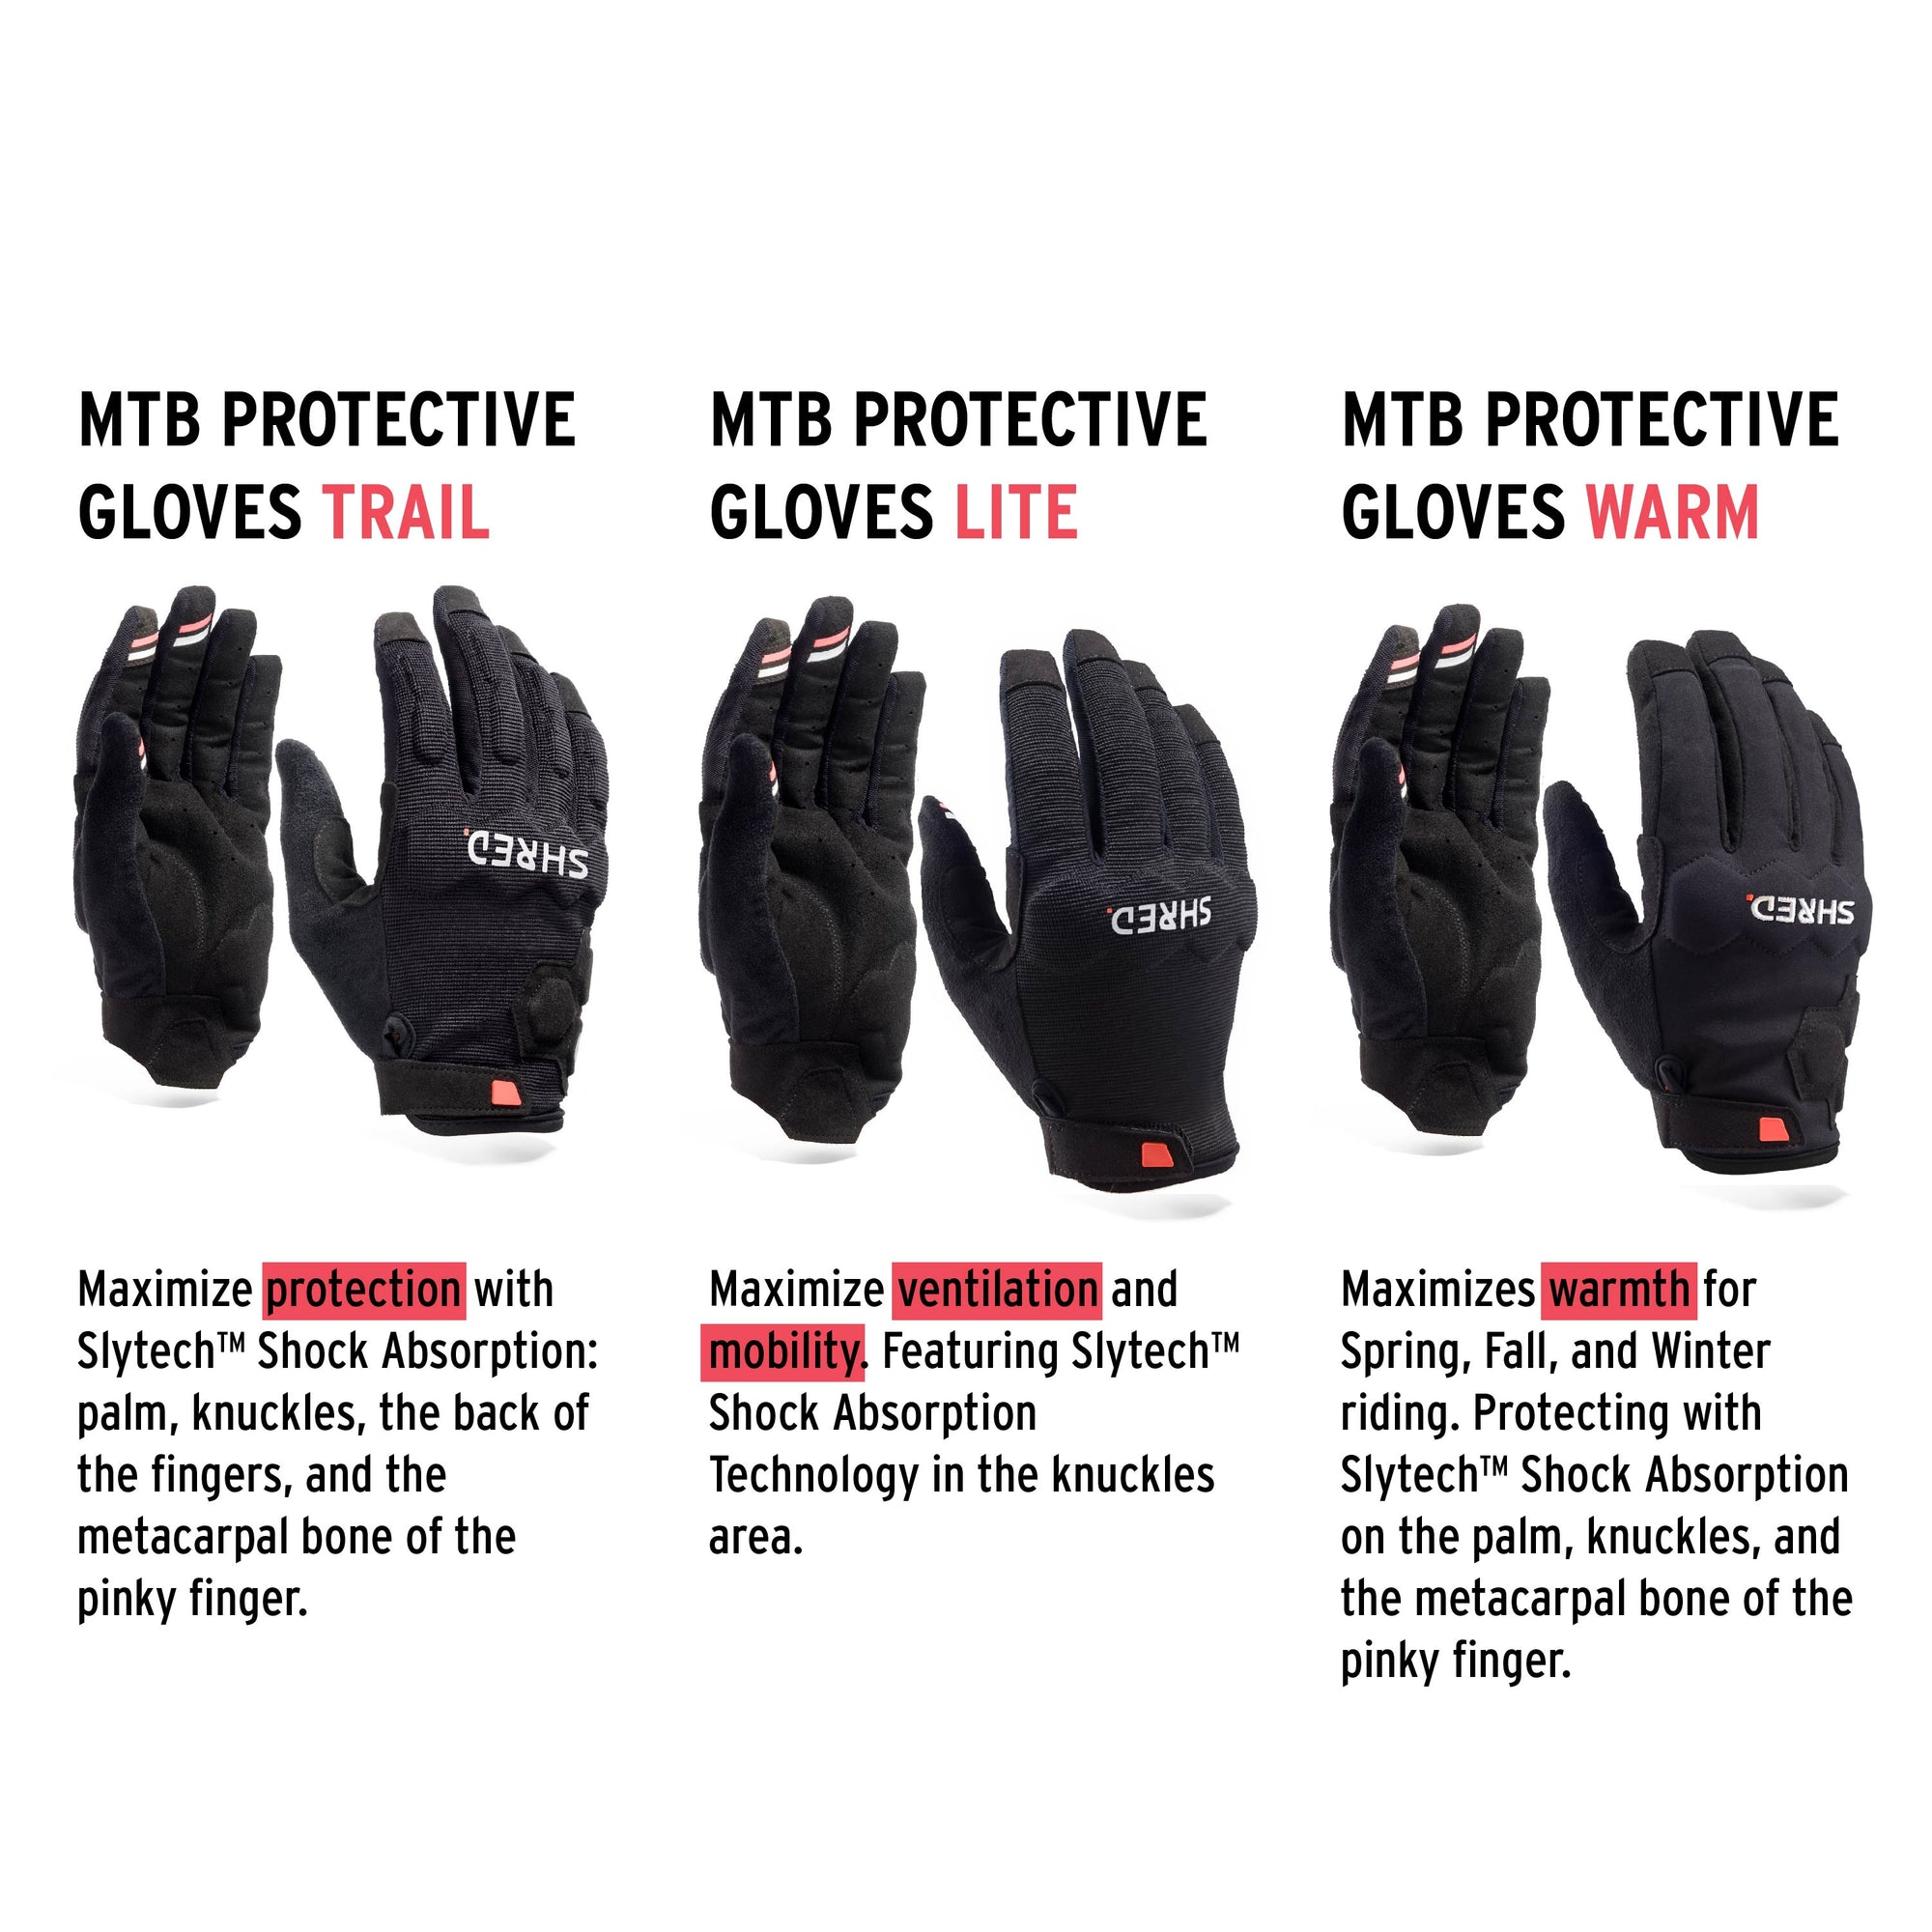 Mtb Protective Gloves Warm Black - Protective Gloves